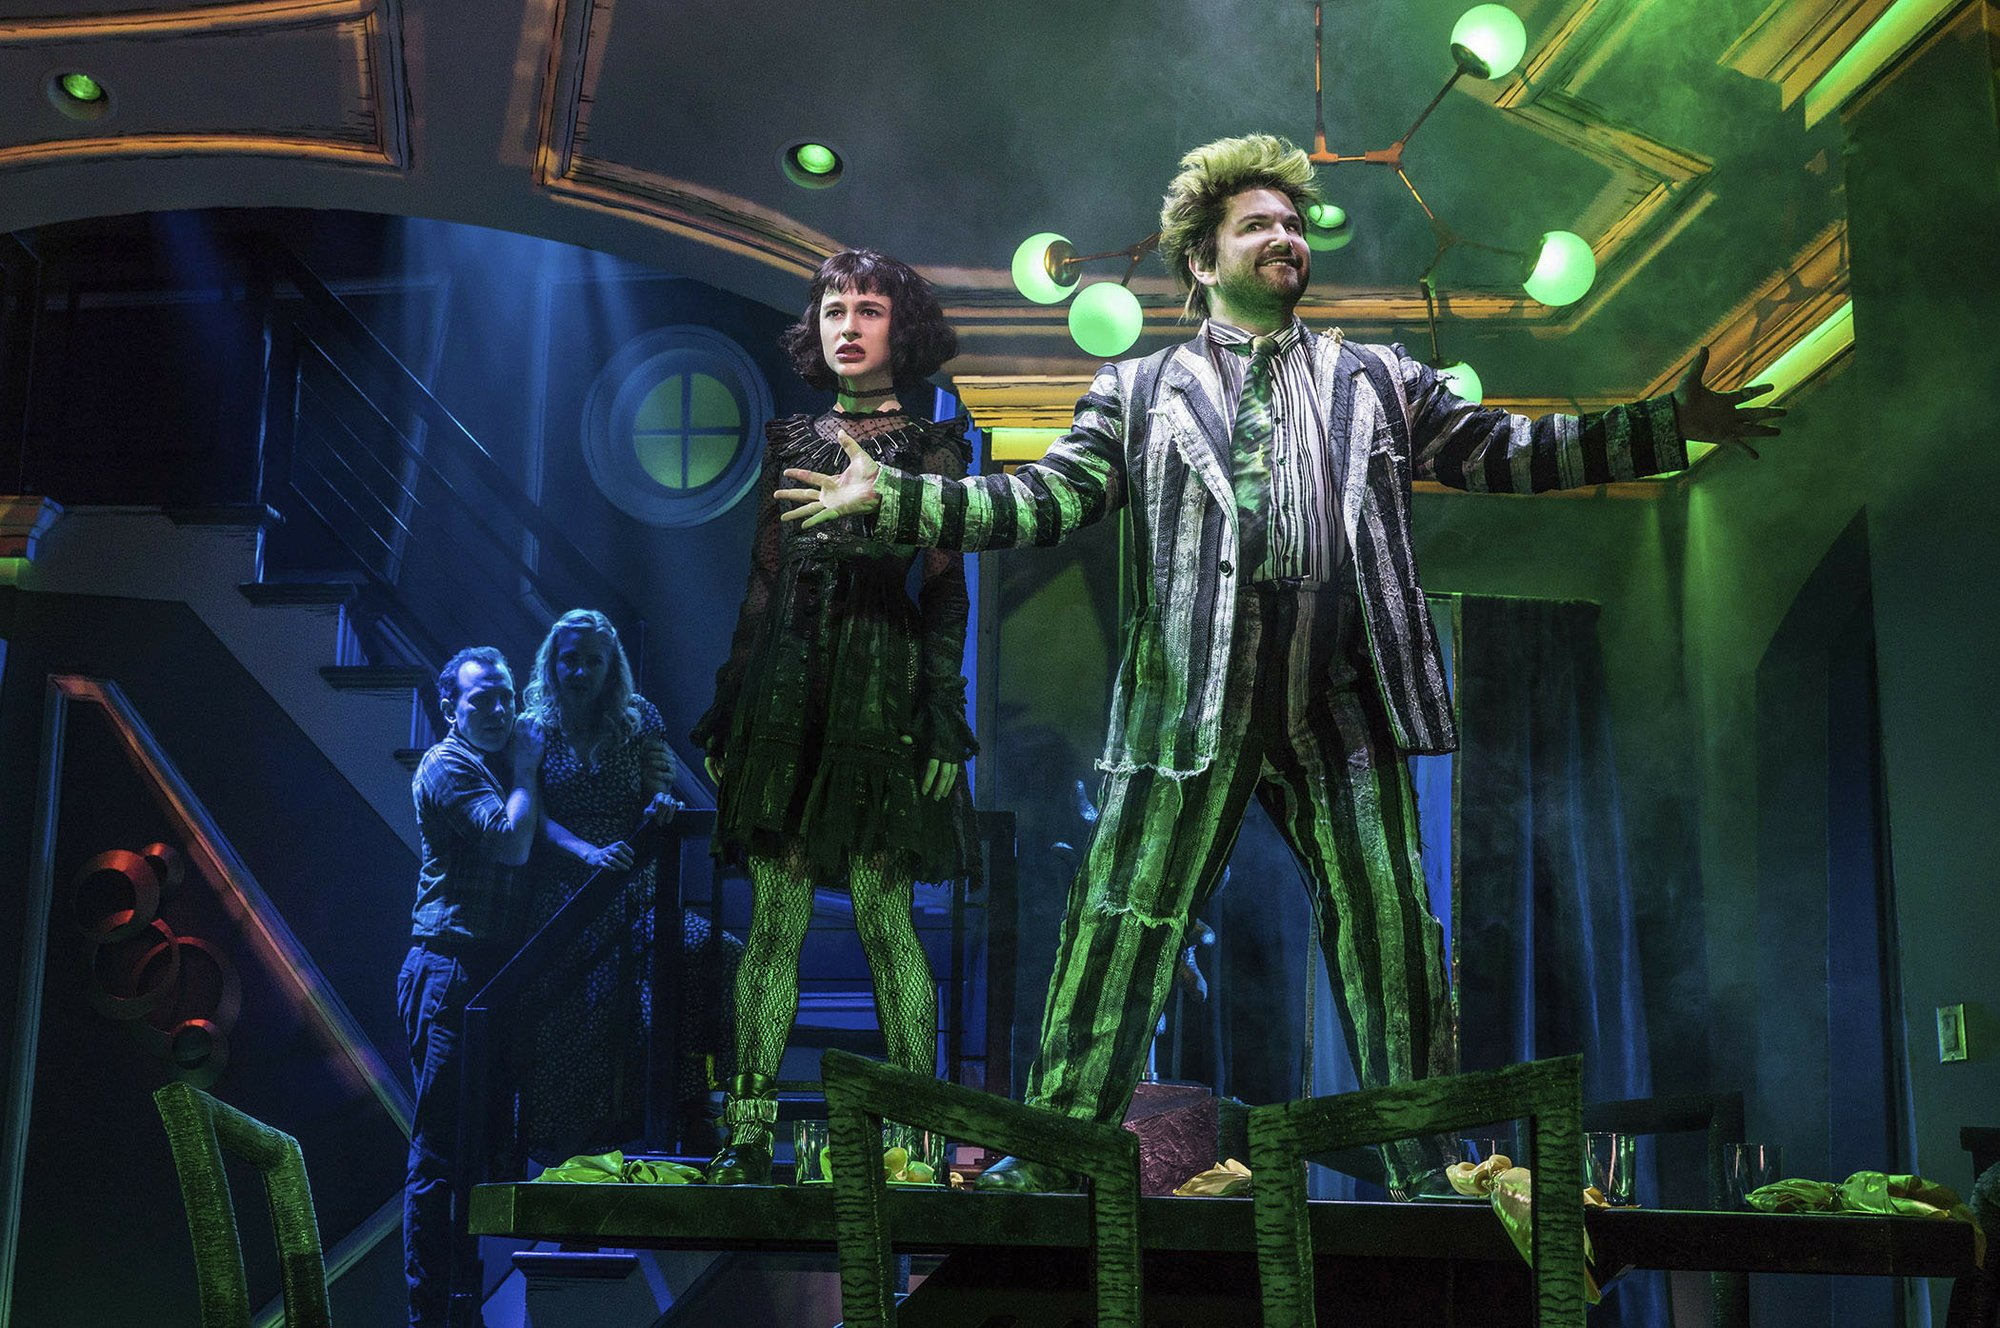 'Beetlejuice' stars reveal the backstage secrets on Broadway